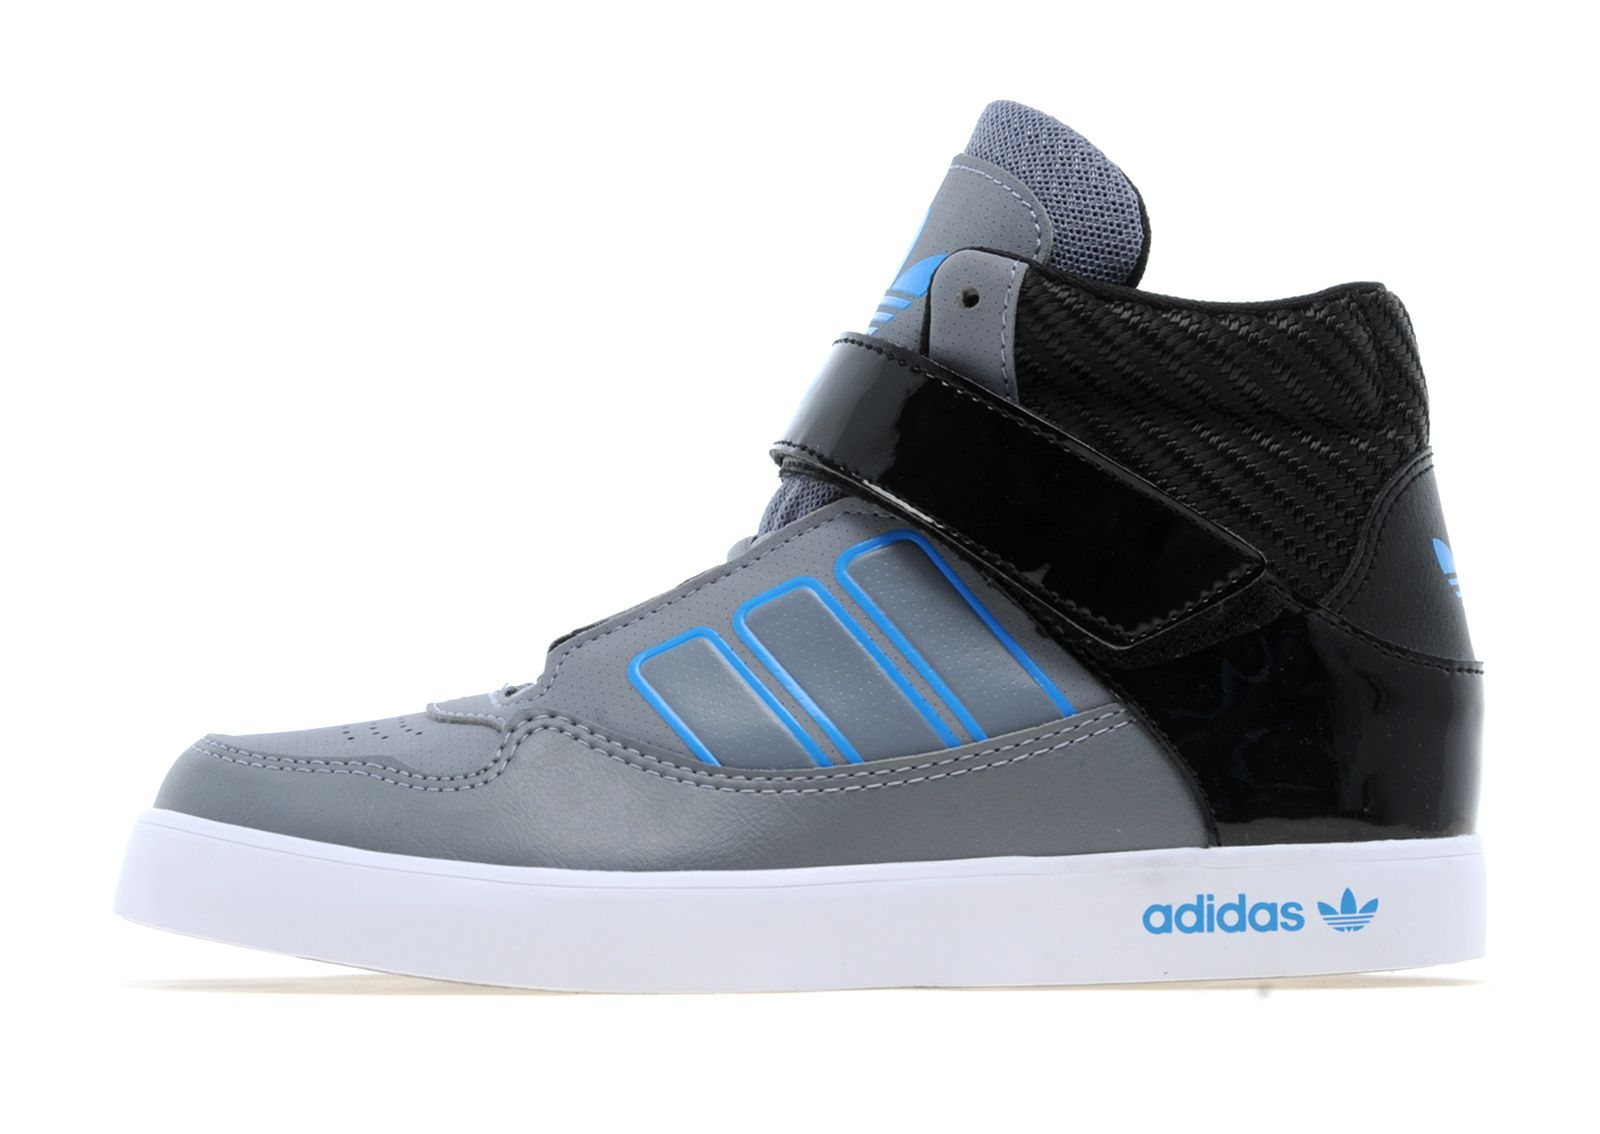 adidas Originals Adi Rise 2.0 Childrens